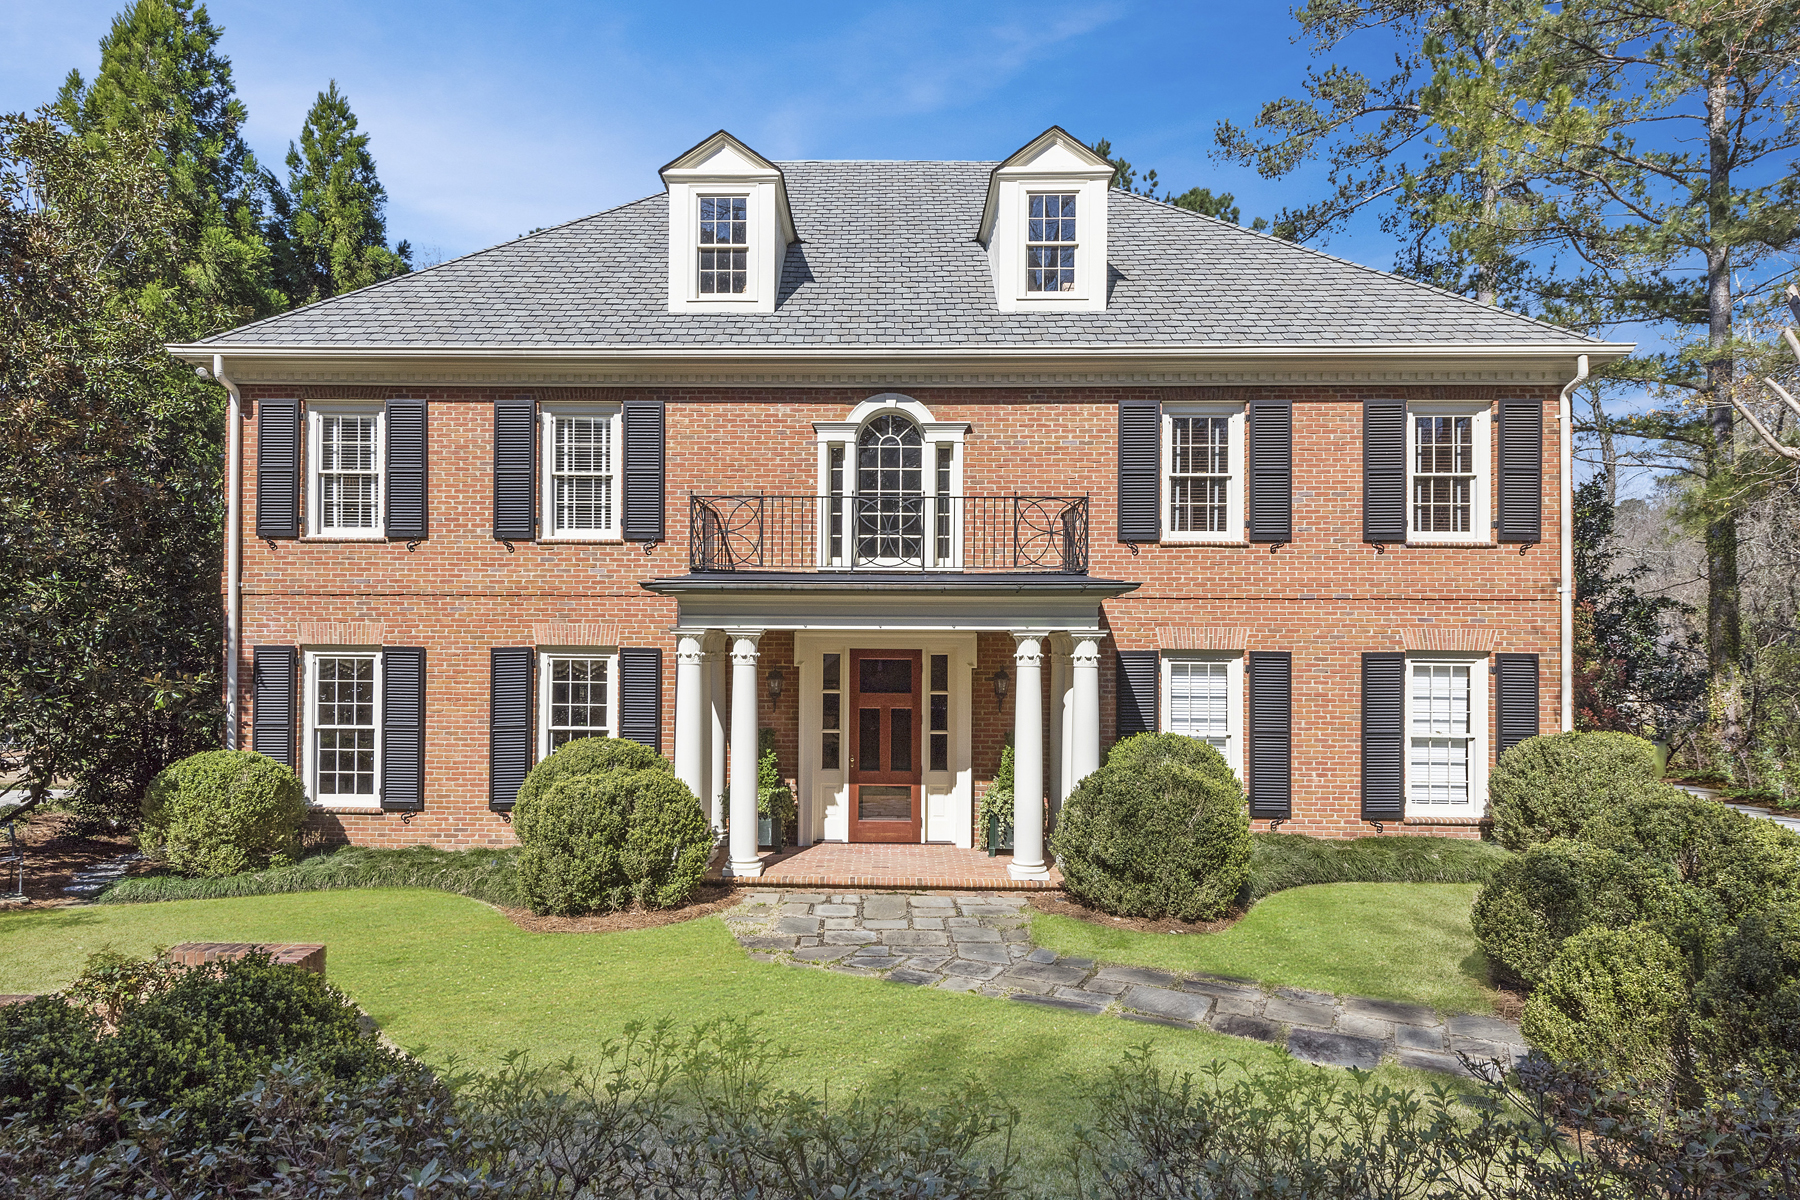 Vivienda unifamiliar por un Venta en Classic Brick Traditional On A Private Cul-de-sac In The Heart Of Buckhead 16 Habersham Park NW Atlanta, Georgia 30305 Estados Unidos